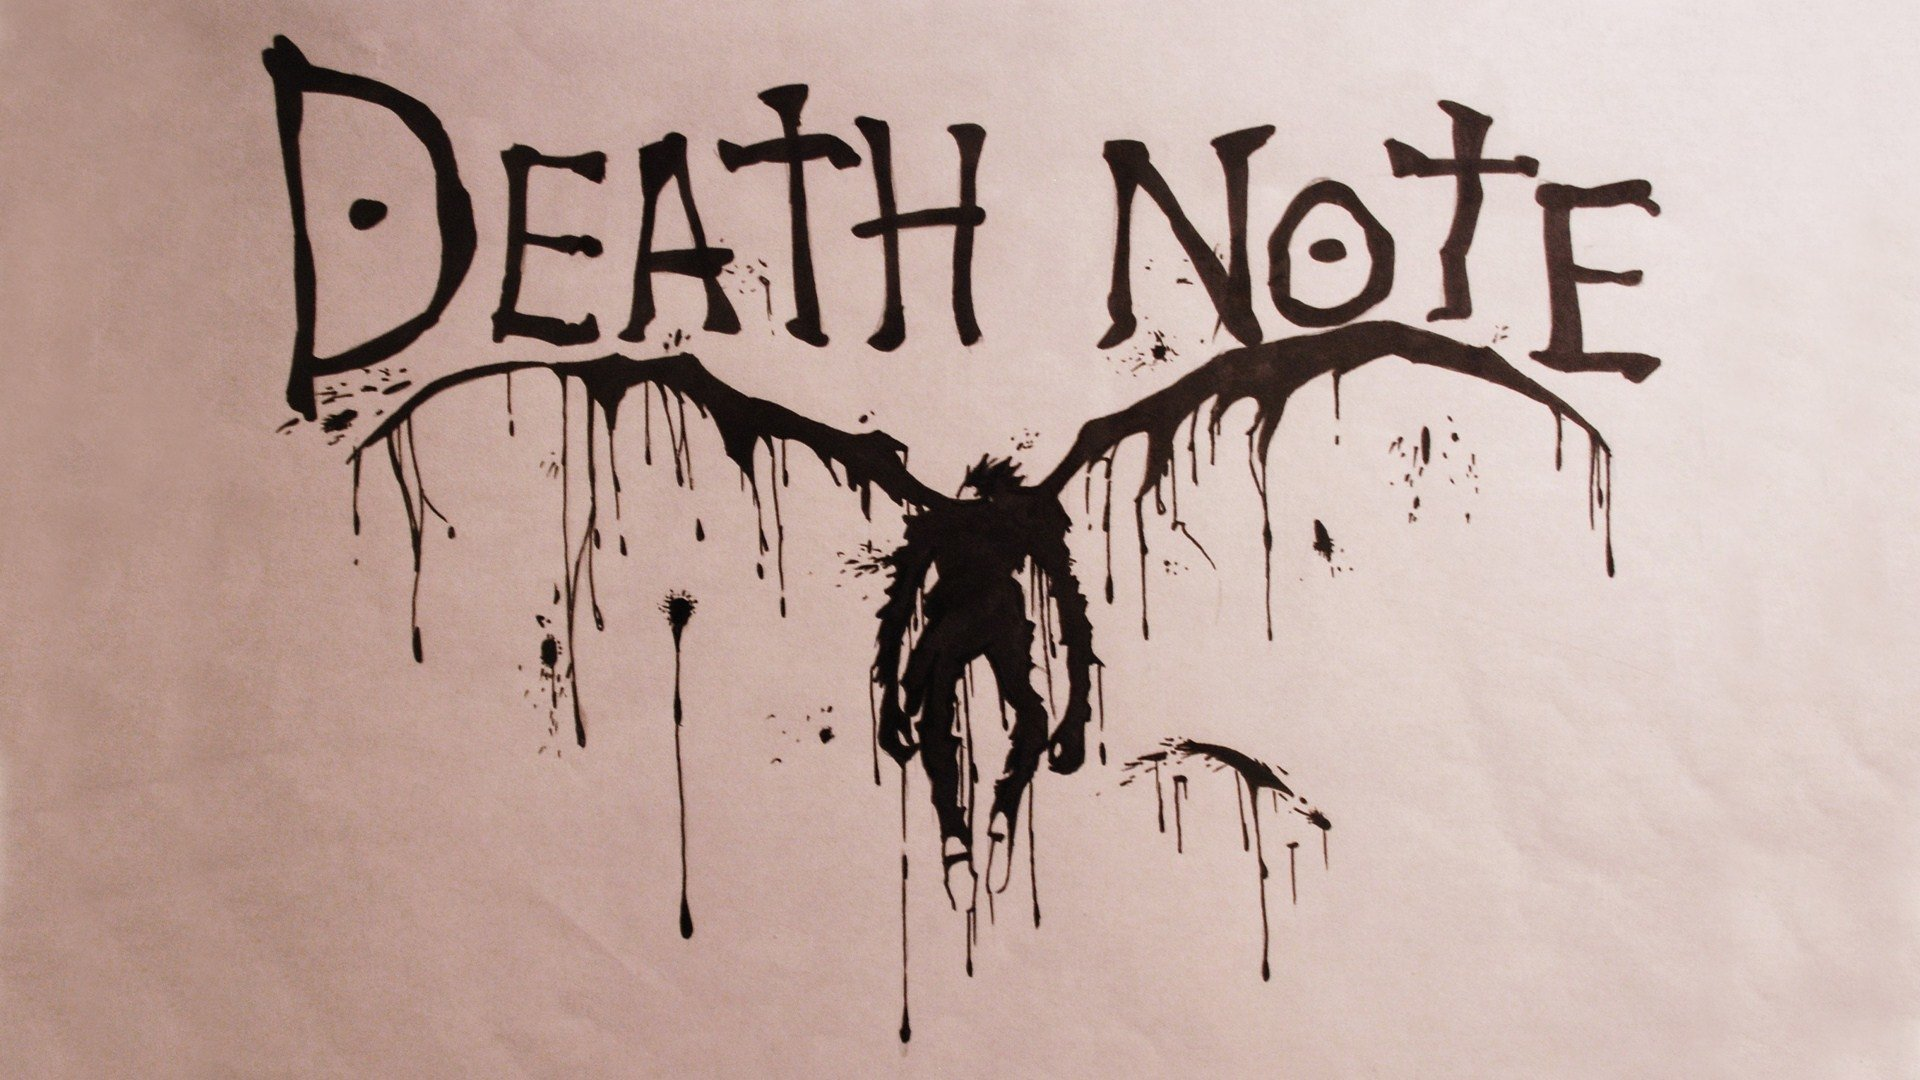 304 Death Note HD Wallpapers | Backgrounds - Wallpaper Abyss